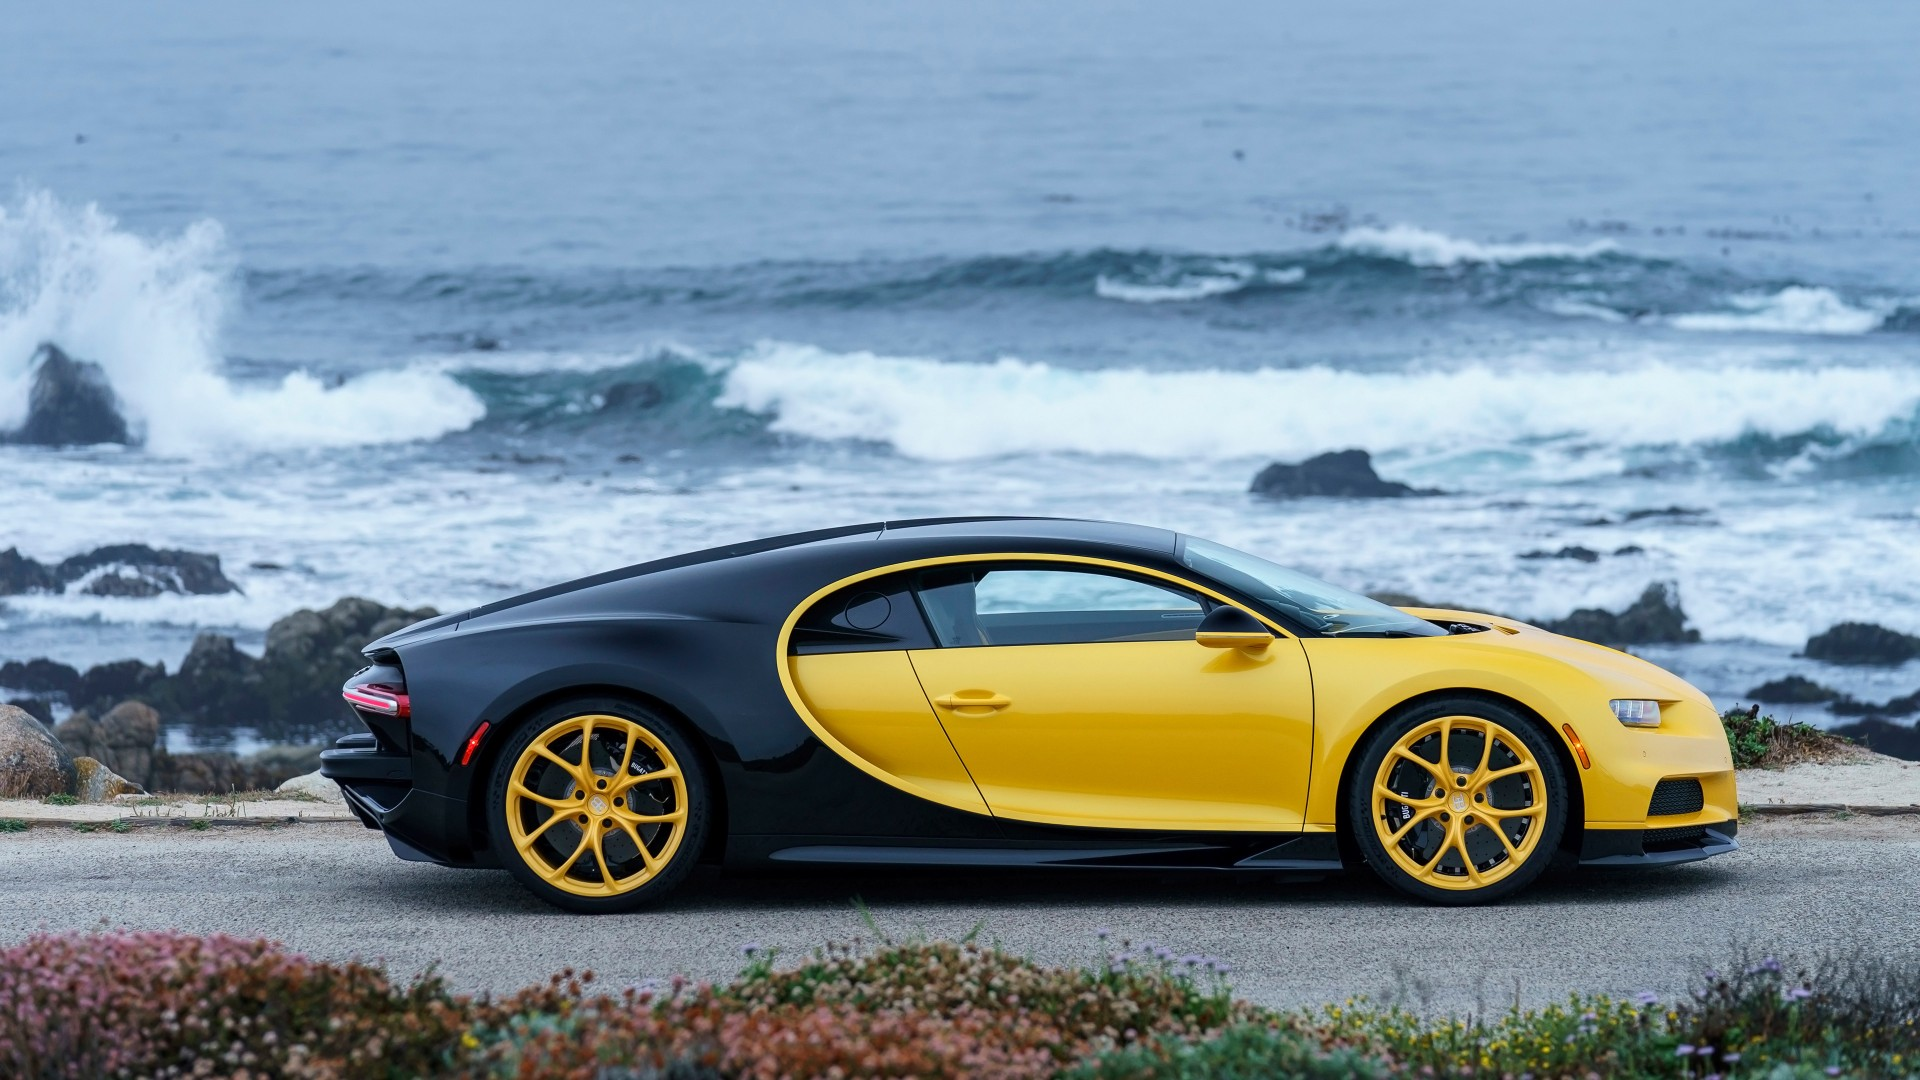 2018 Bugatti Chiron Yellow and Black 4K 3 Wallpaper | HD ...